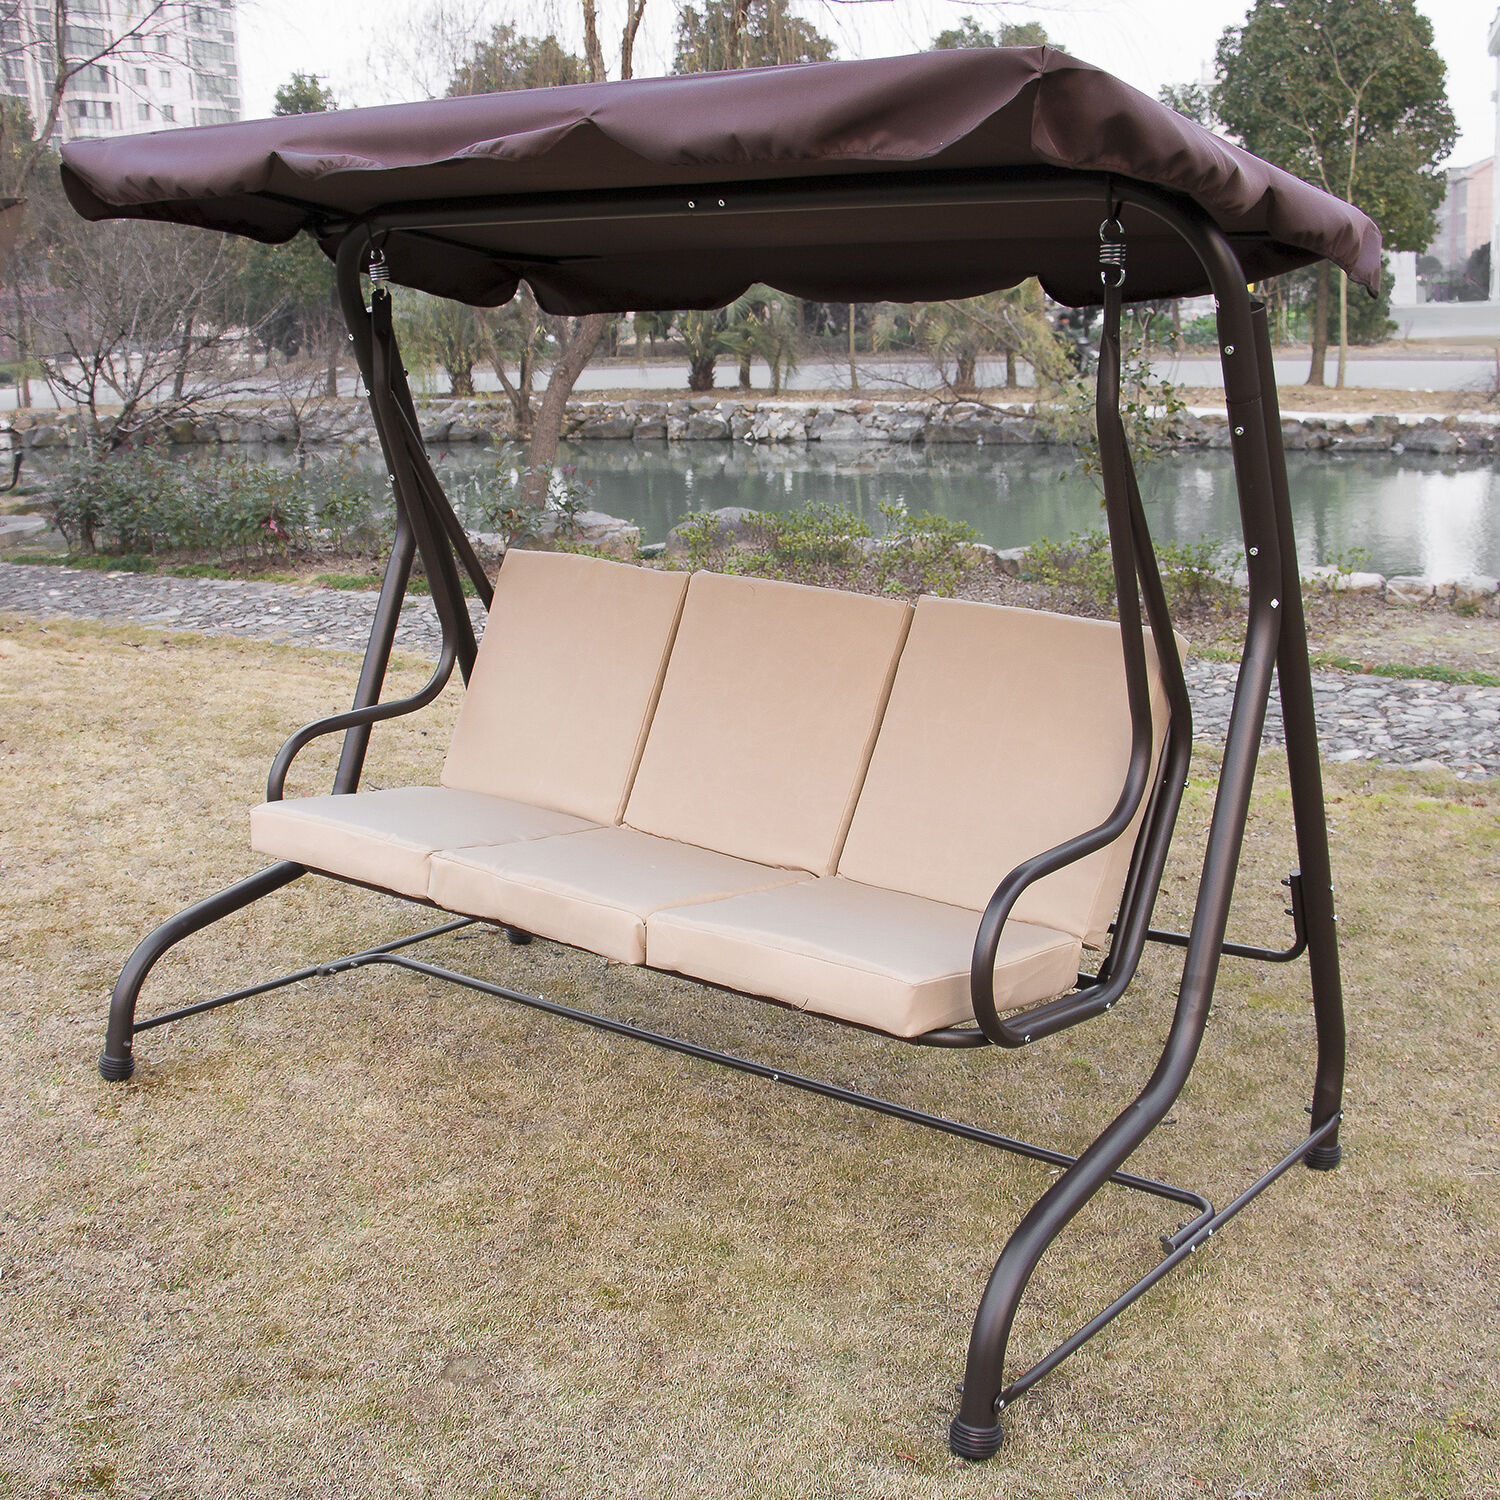 yoga swing chair ladder back dining chairs french country outdoor 3 person canopy glider hammock patio